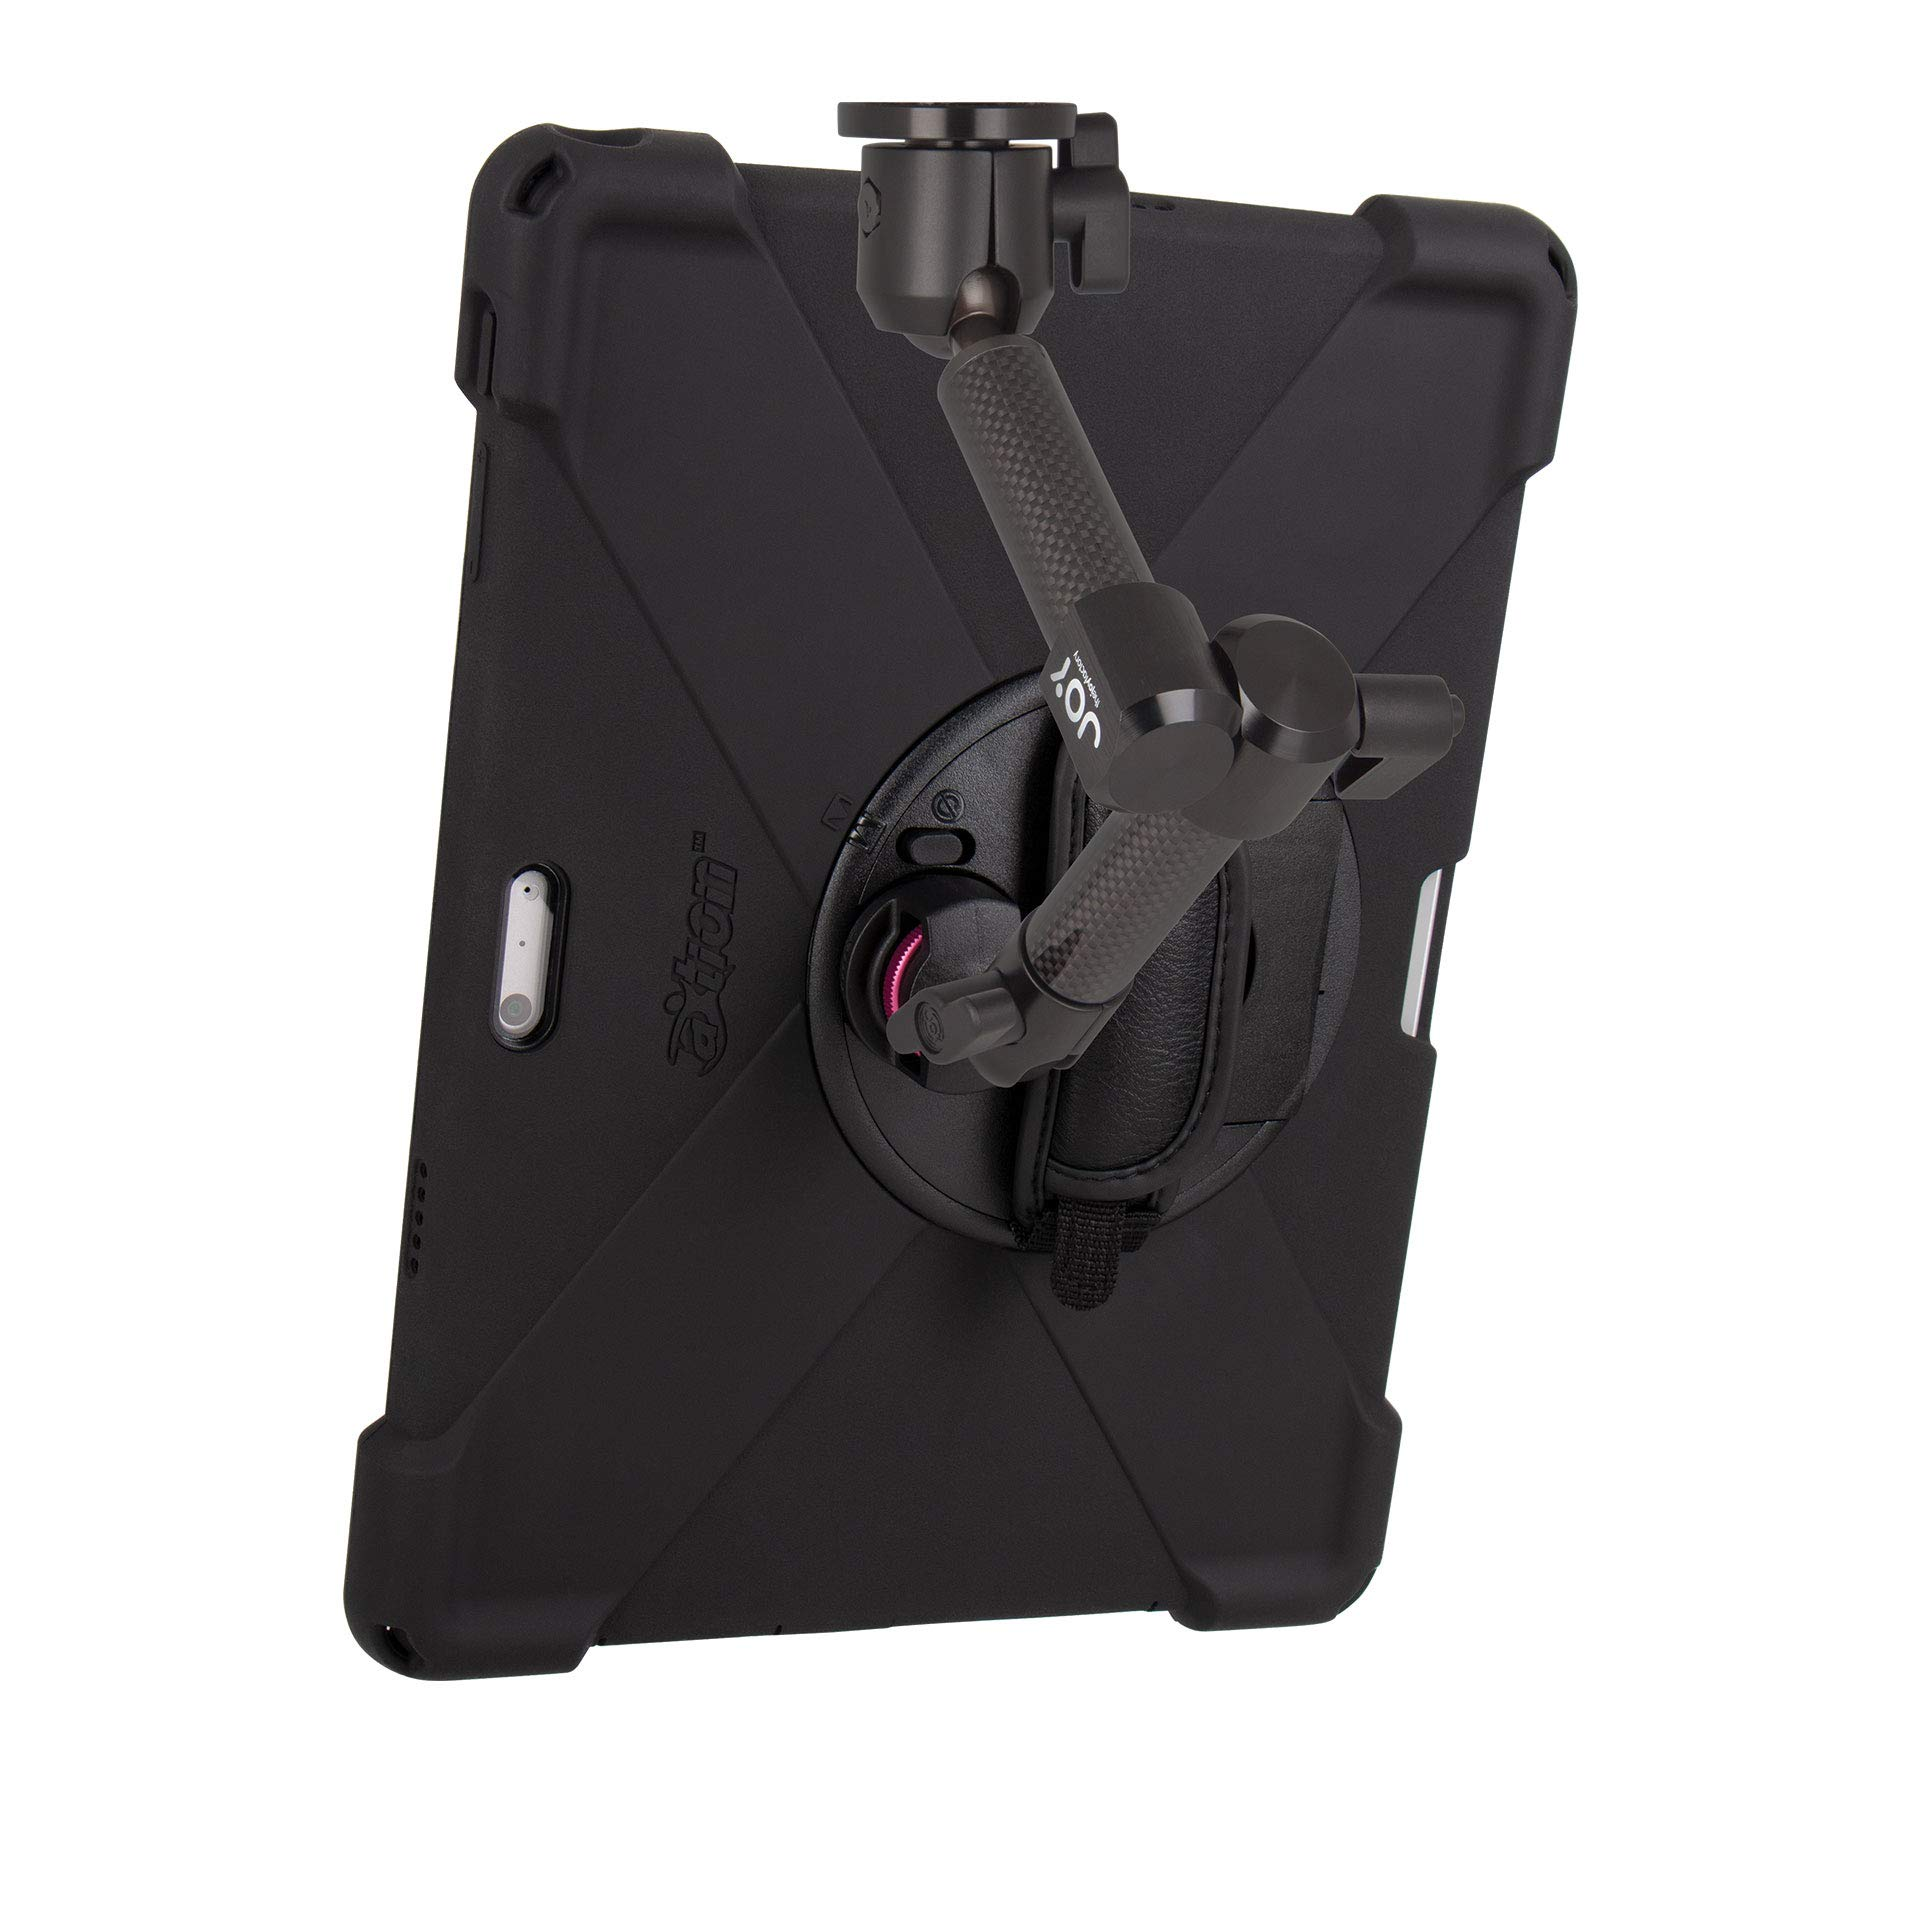 The Joy Factory MagConnect Carbon Fiber Wall/Counter Mount w/aXtion Bold MP Water-Resistant Rugged Shockproof Case for Surface Pro 4/5/6, Built-in Screen Protector, Hand Strap, Kickstand (MWM3004MP) by The Joy Factory (Image #4)